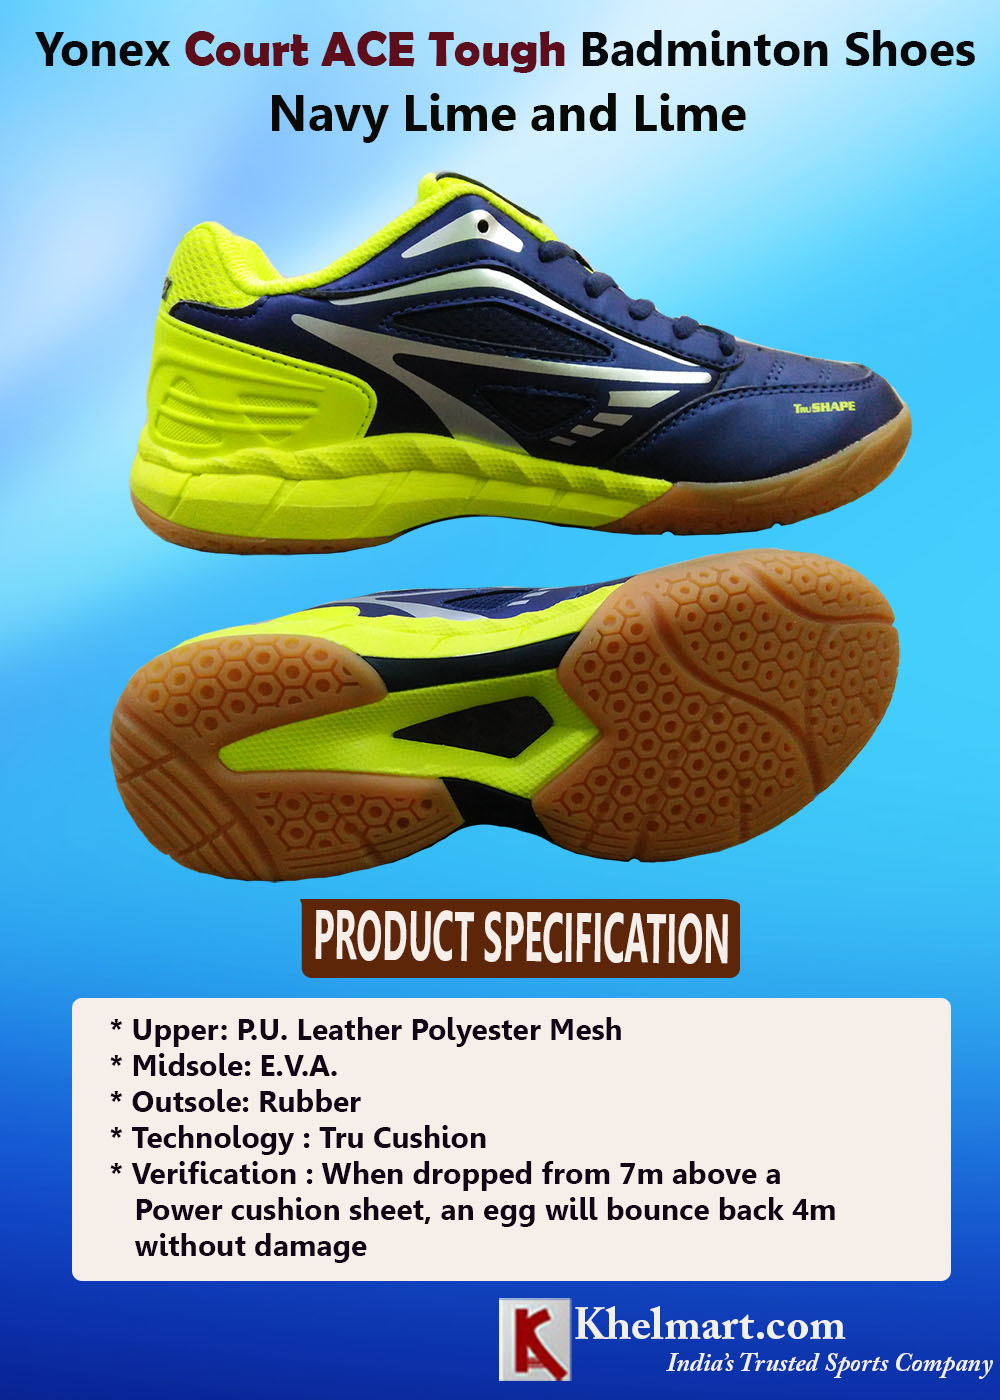 Yonex Court ACE Tough Badminton Shoes Navy Lime and Lime_4